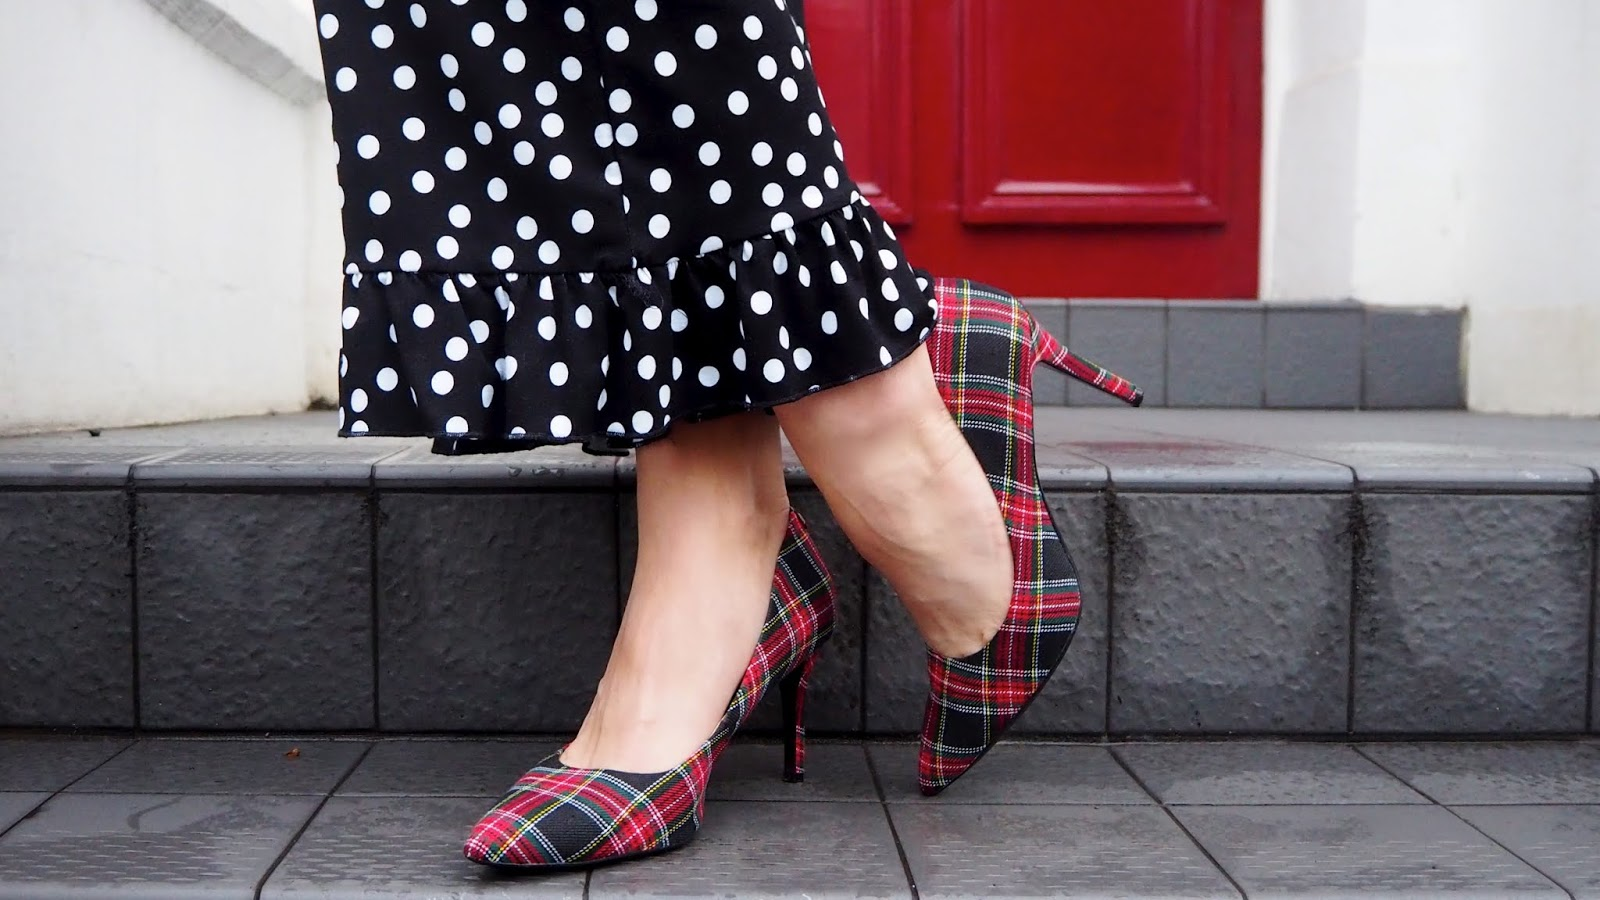 black and white polka dot ruffle trousers and red plaid high heels